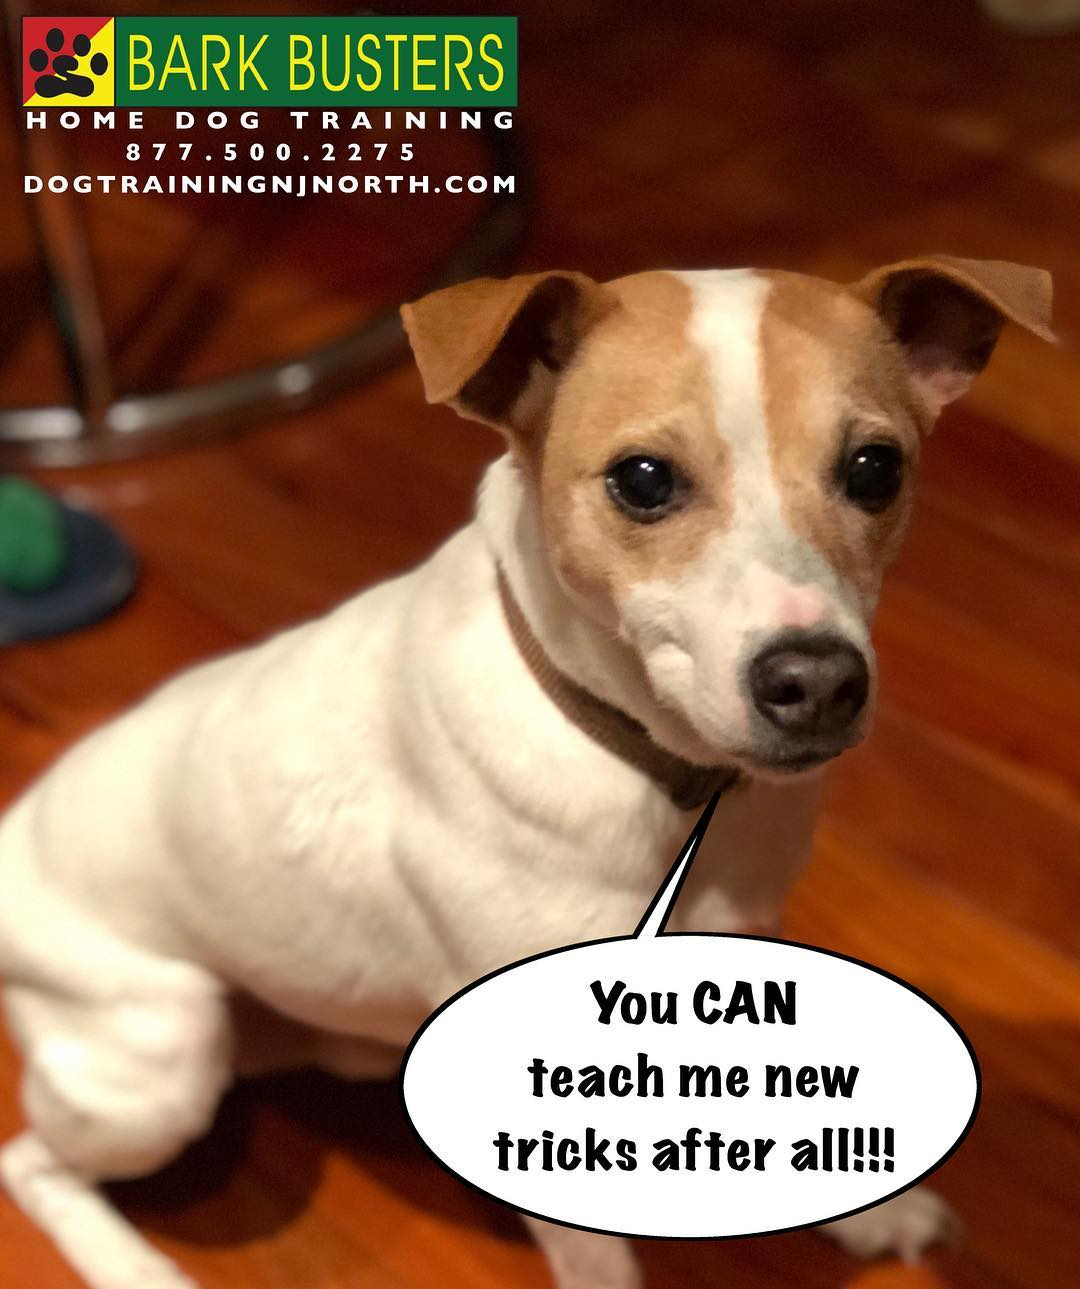 #dog #JackRussellTerrier #DogTraining #BarkBusters #dogtrainerNorthernNewJersey #speakdog #dogs #puppies #HappyDogsHappyFamilies #dogsOfBarkBusters #NorthBergen #BestDogTrainingNewJersey